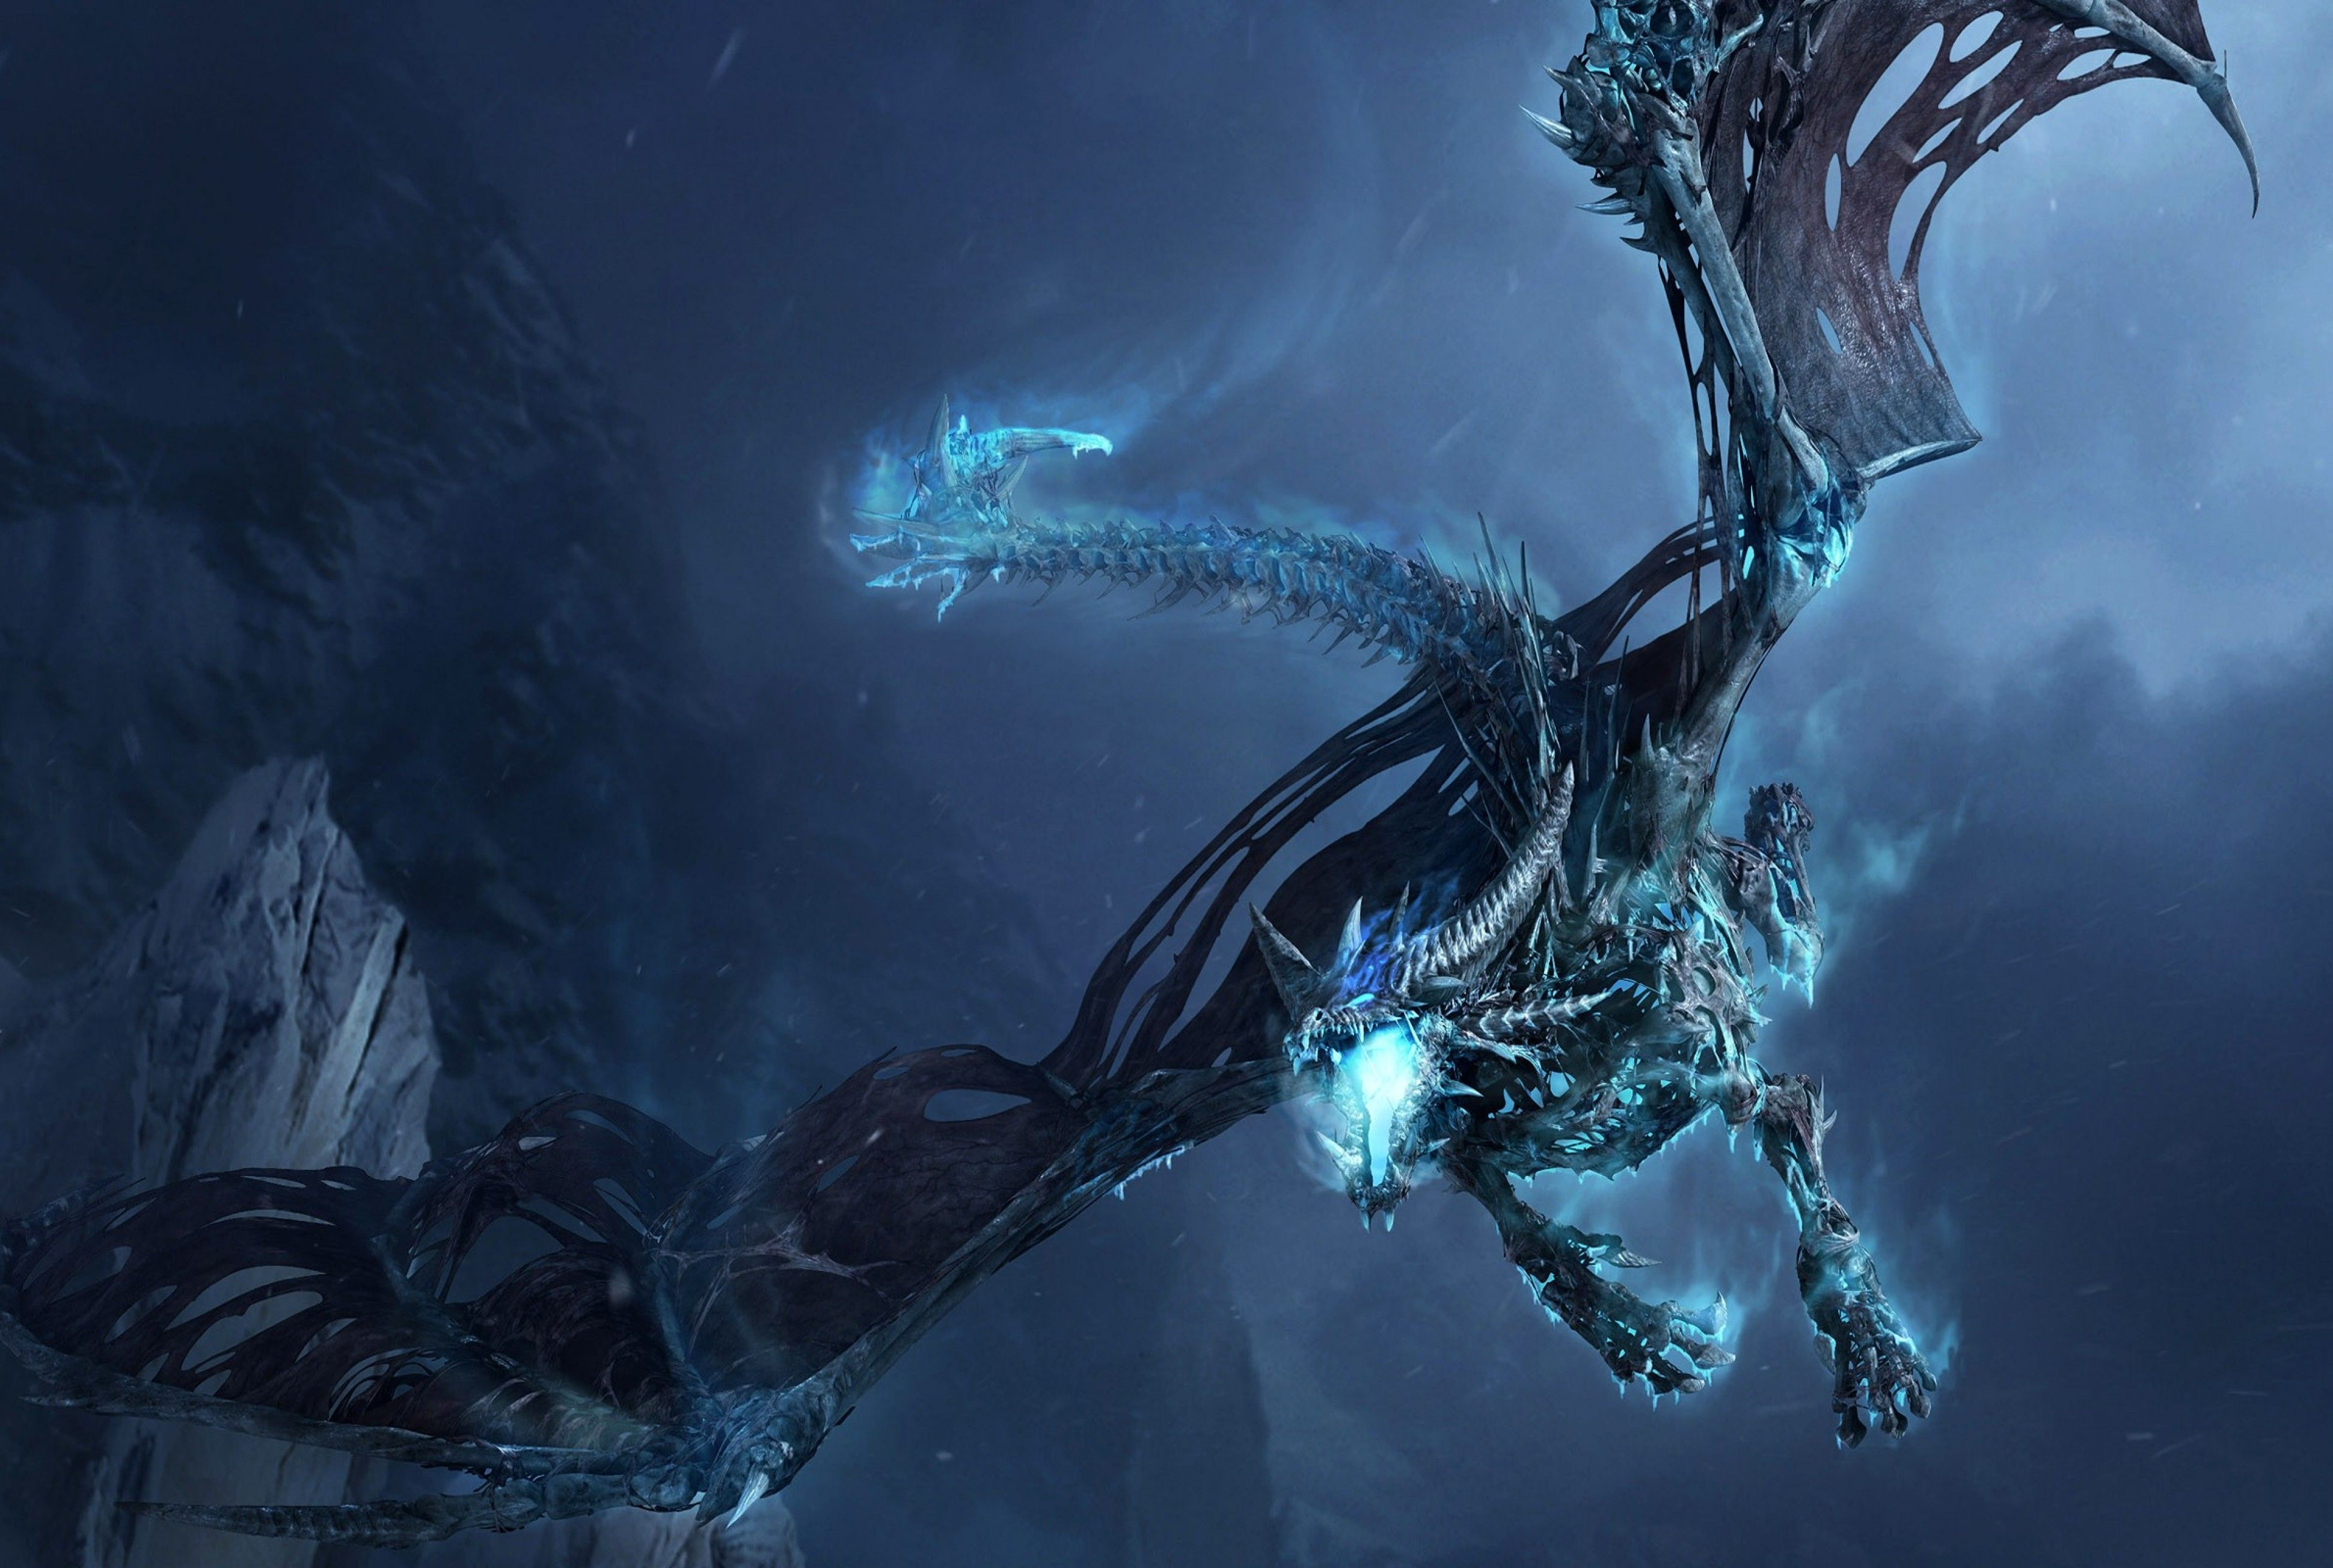 Blue Lightning Dragon Wallpapers Top Free Blue Lightning Dragon Backgrounds Wallpaperaccess